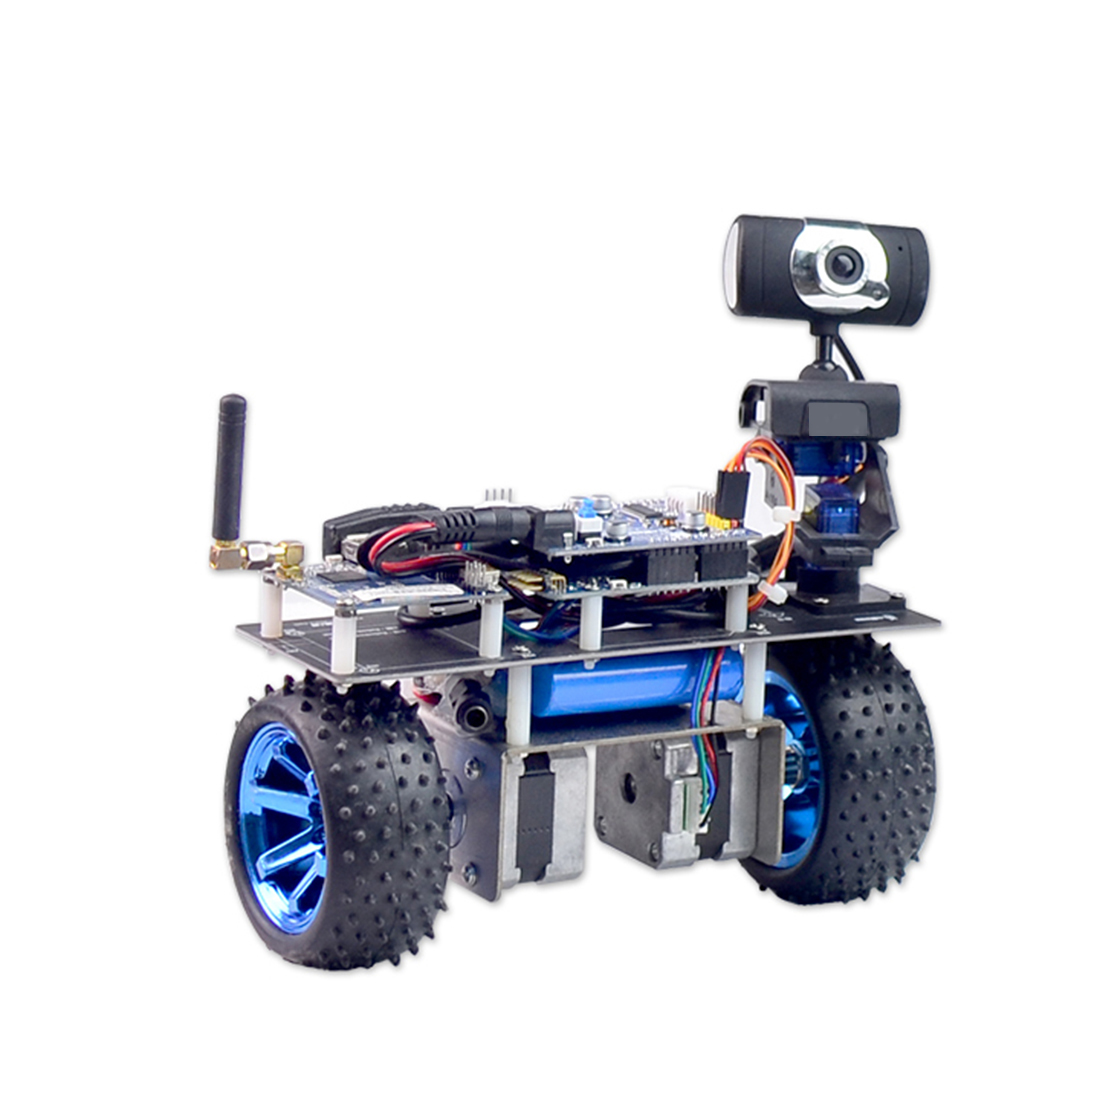 Programmable Intelligent Balance Car WiFi Video Robot Car Support IOS/Android APP PC Remote Control For STM32 Educational Toys